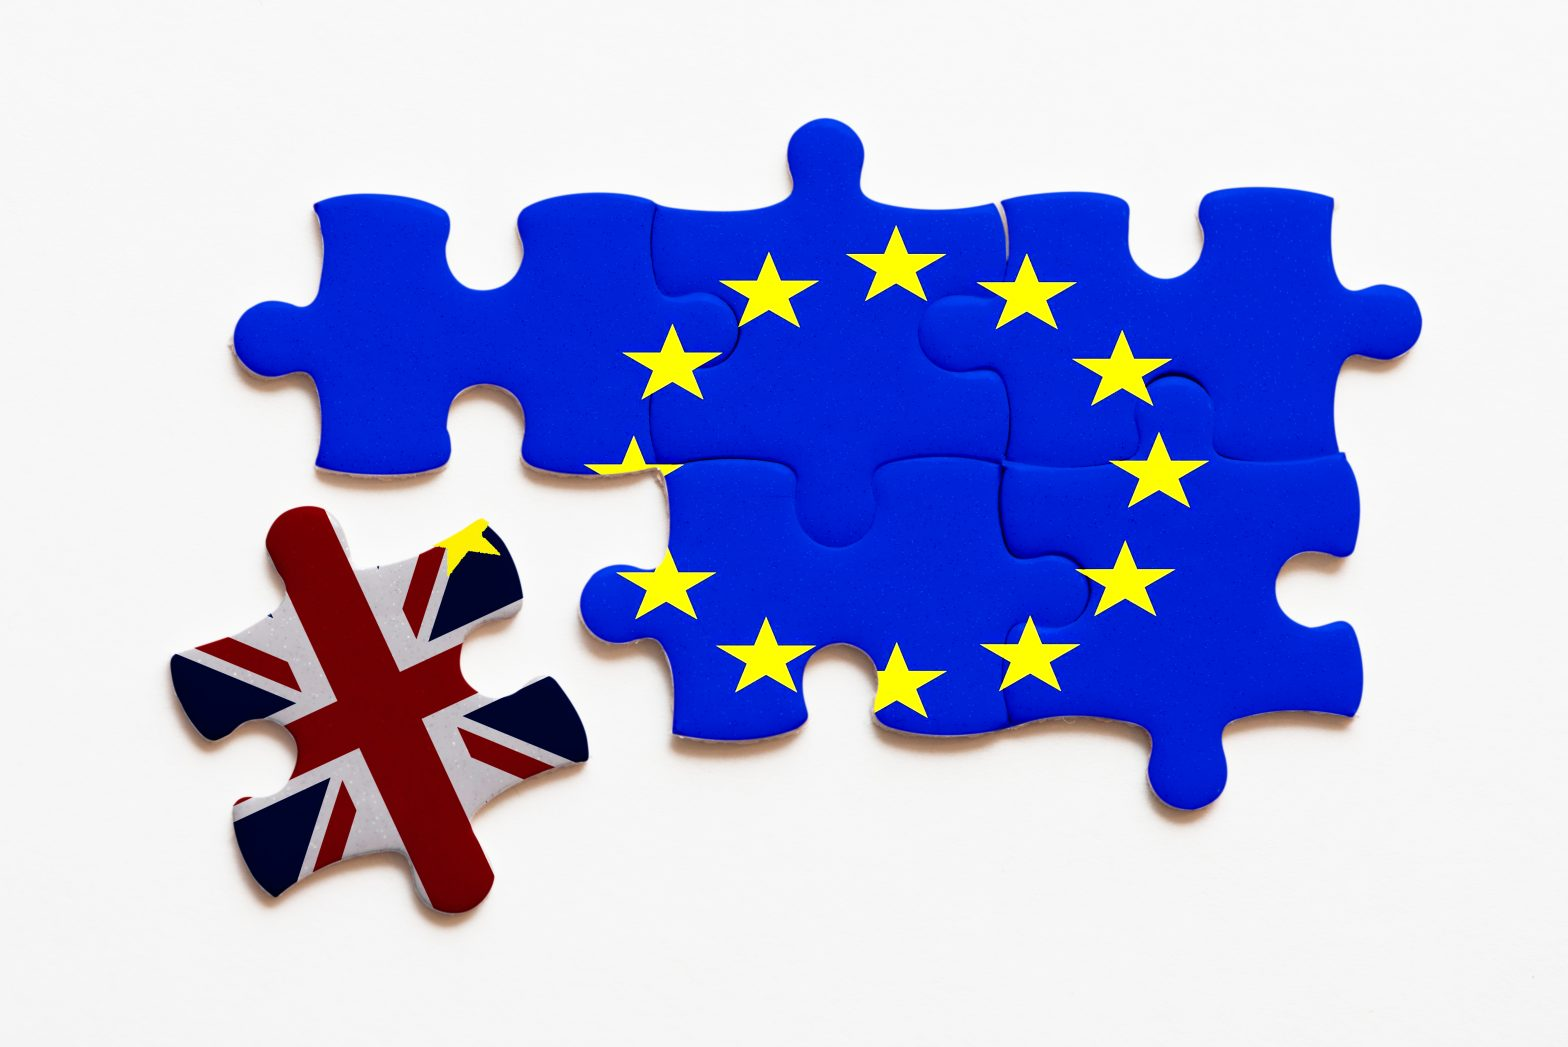 brexit jigsaw puzzle concept on white background Toni García CEO Millennial Inmobiliario